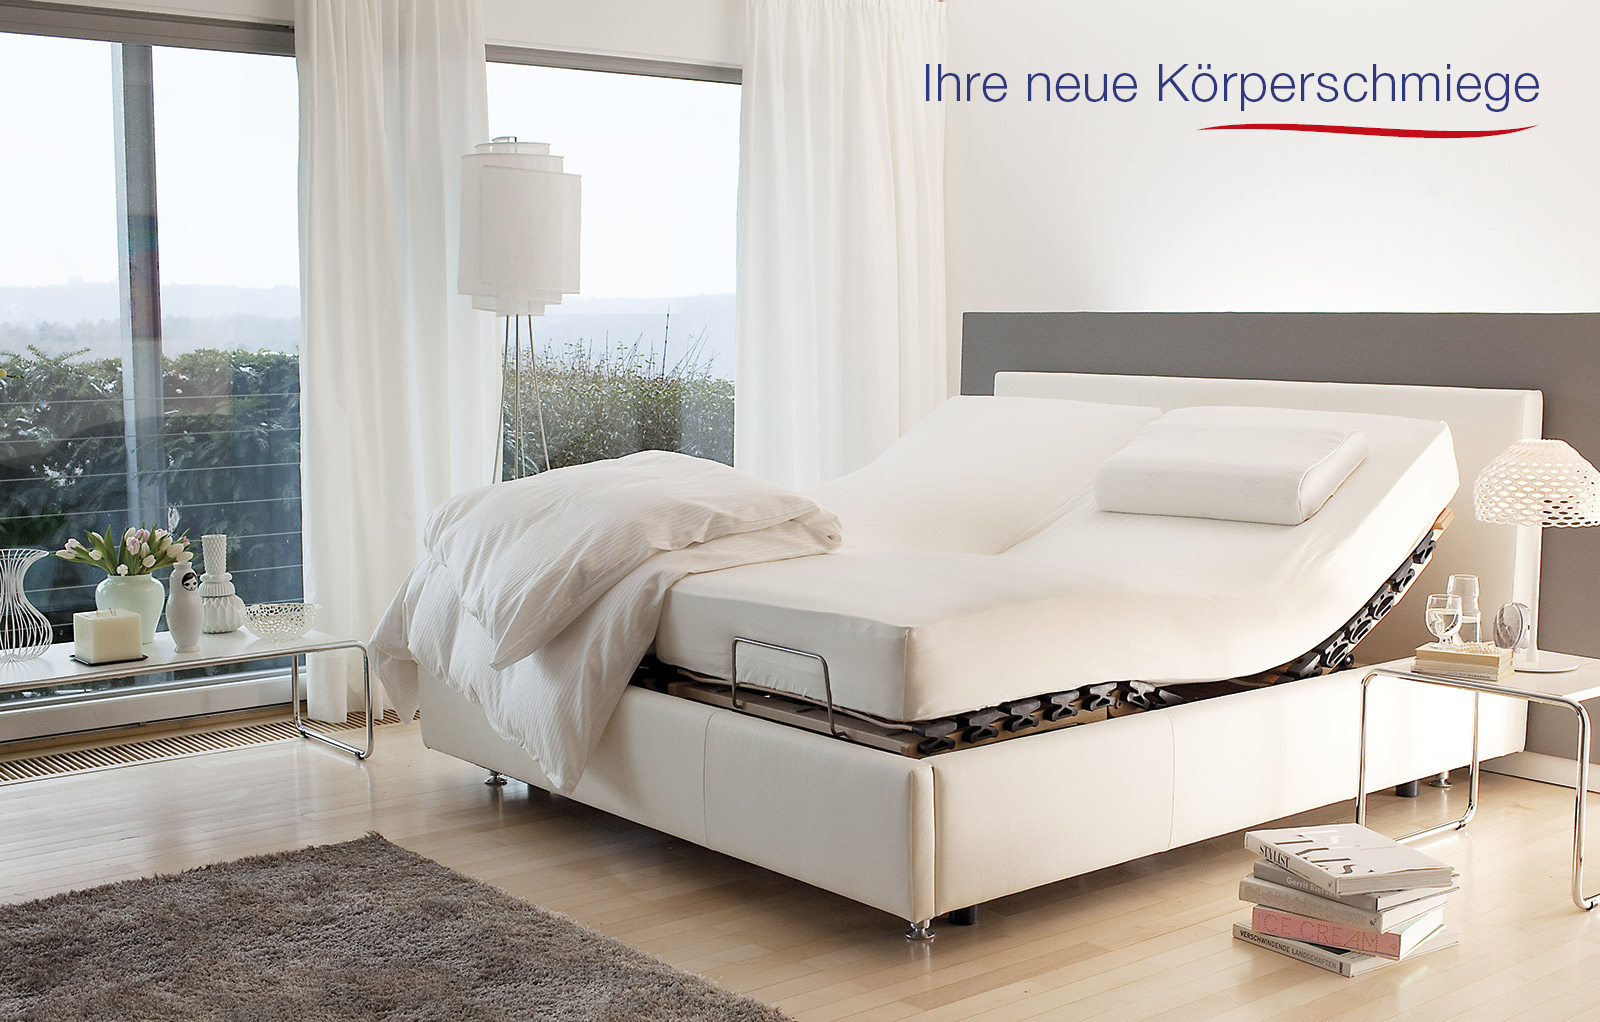 bettenmanufaktur und stofftr ume betten bubert und stoffideen. Black Bedroom Furniture Sets. Home Design Ideas